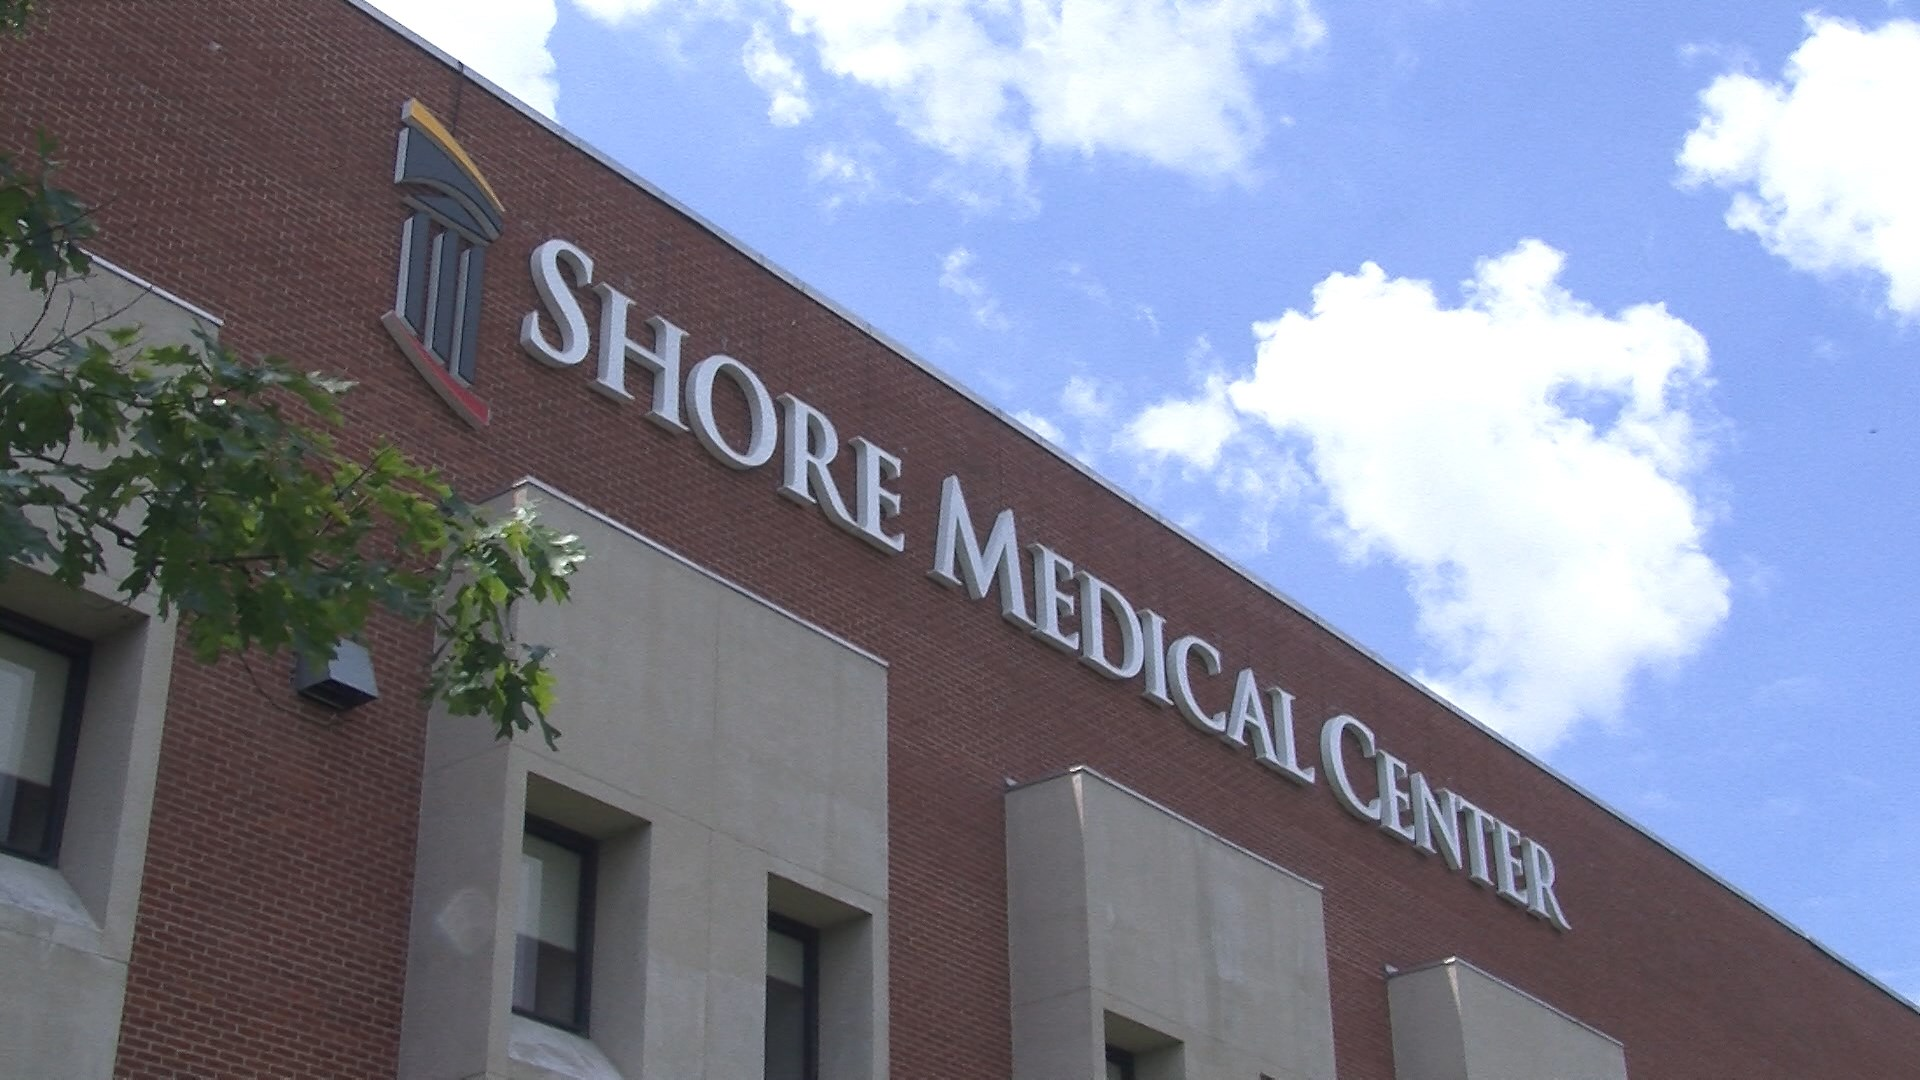 Shore Medical Center_WBOC